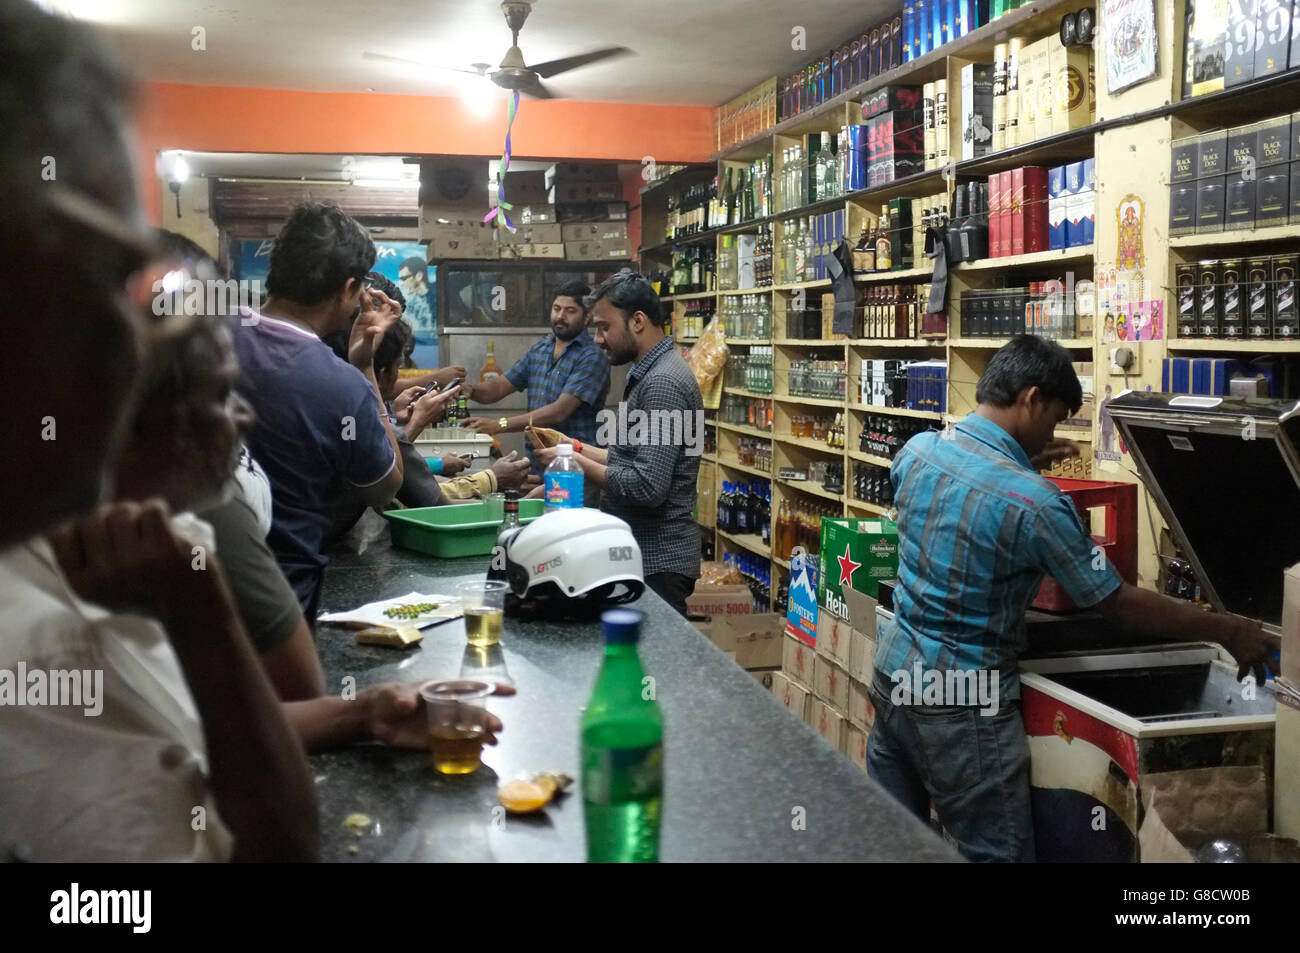 scenes from indian wine shops, a cross between a liquor store and a bar, full of local people drinking cheap branded - Stock Image